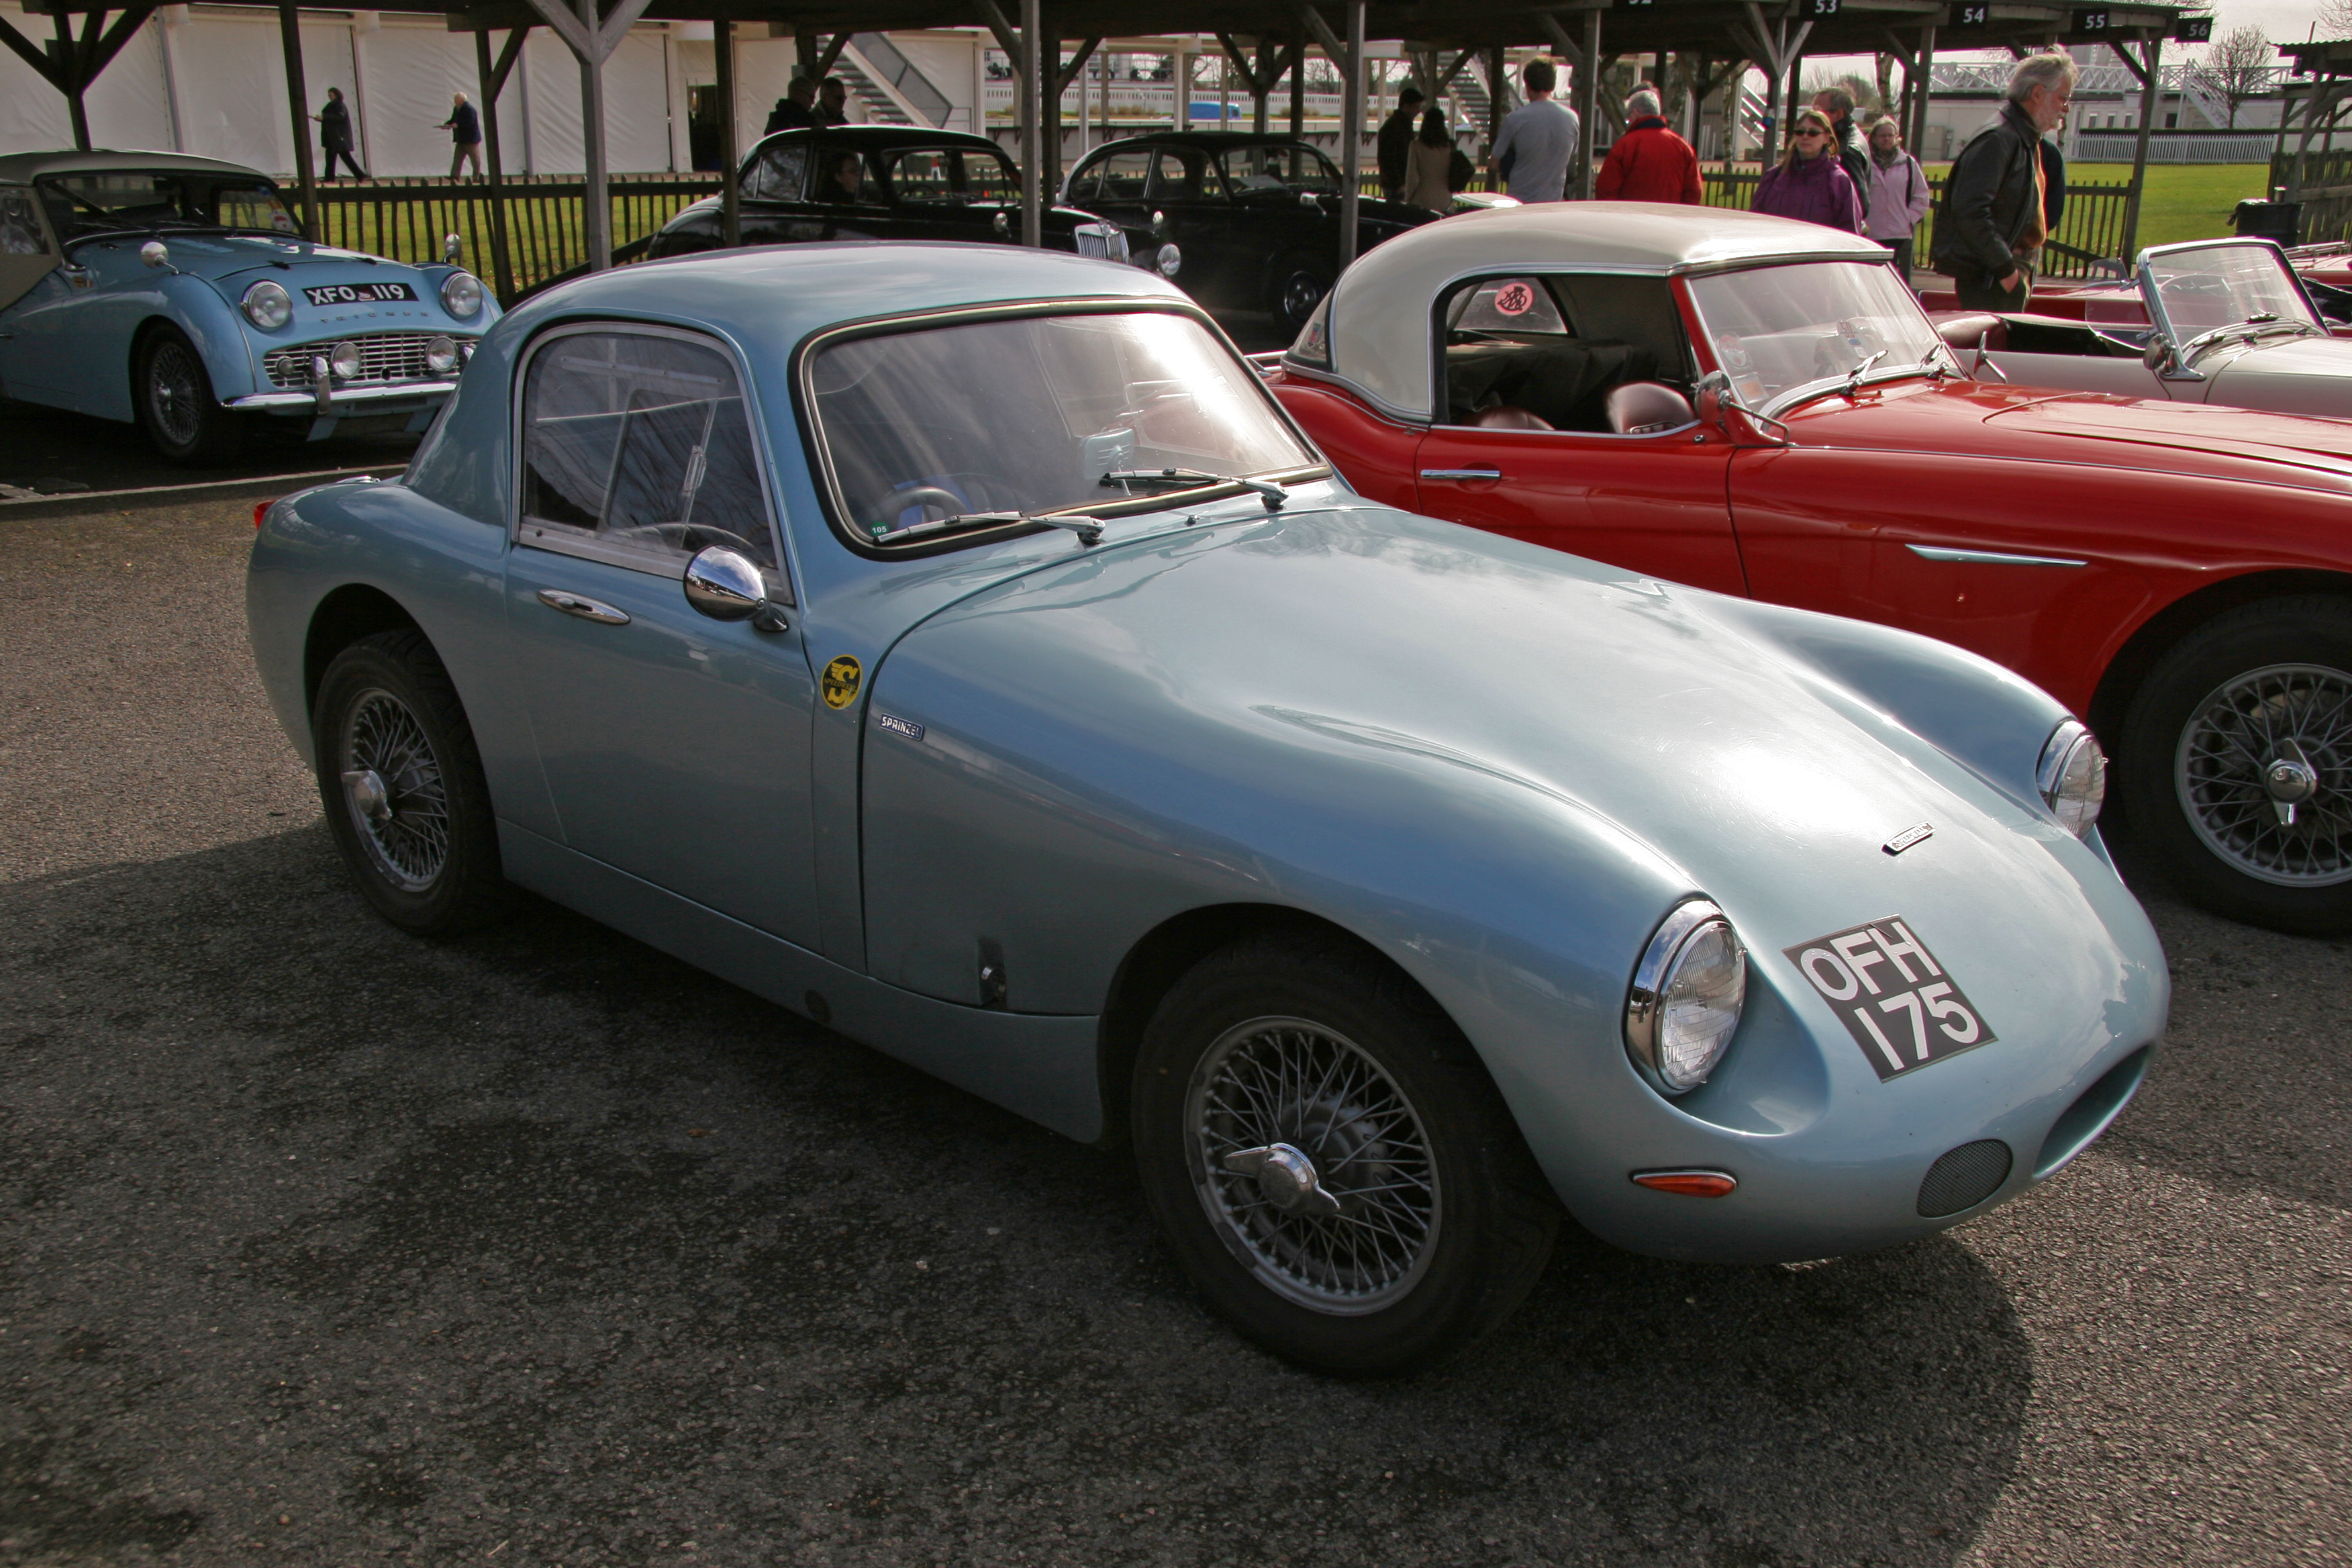 Austin-Healey_Sebring_Sprite_Coupe_-_Flickr_-_exfordy.jpg